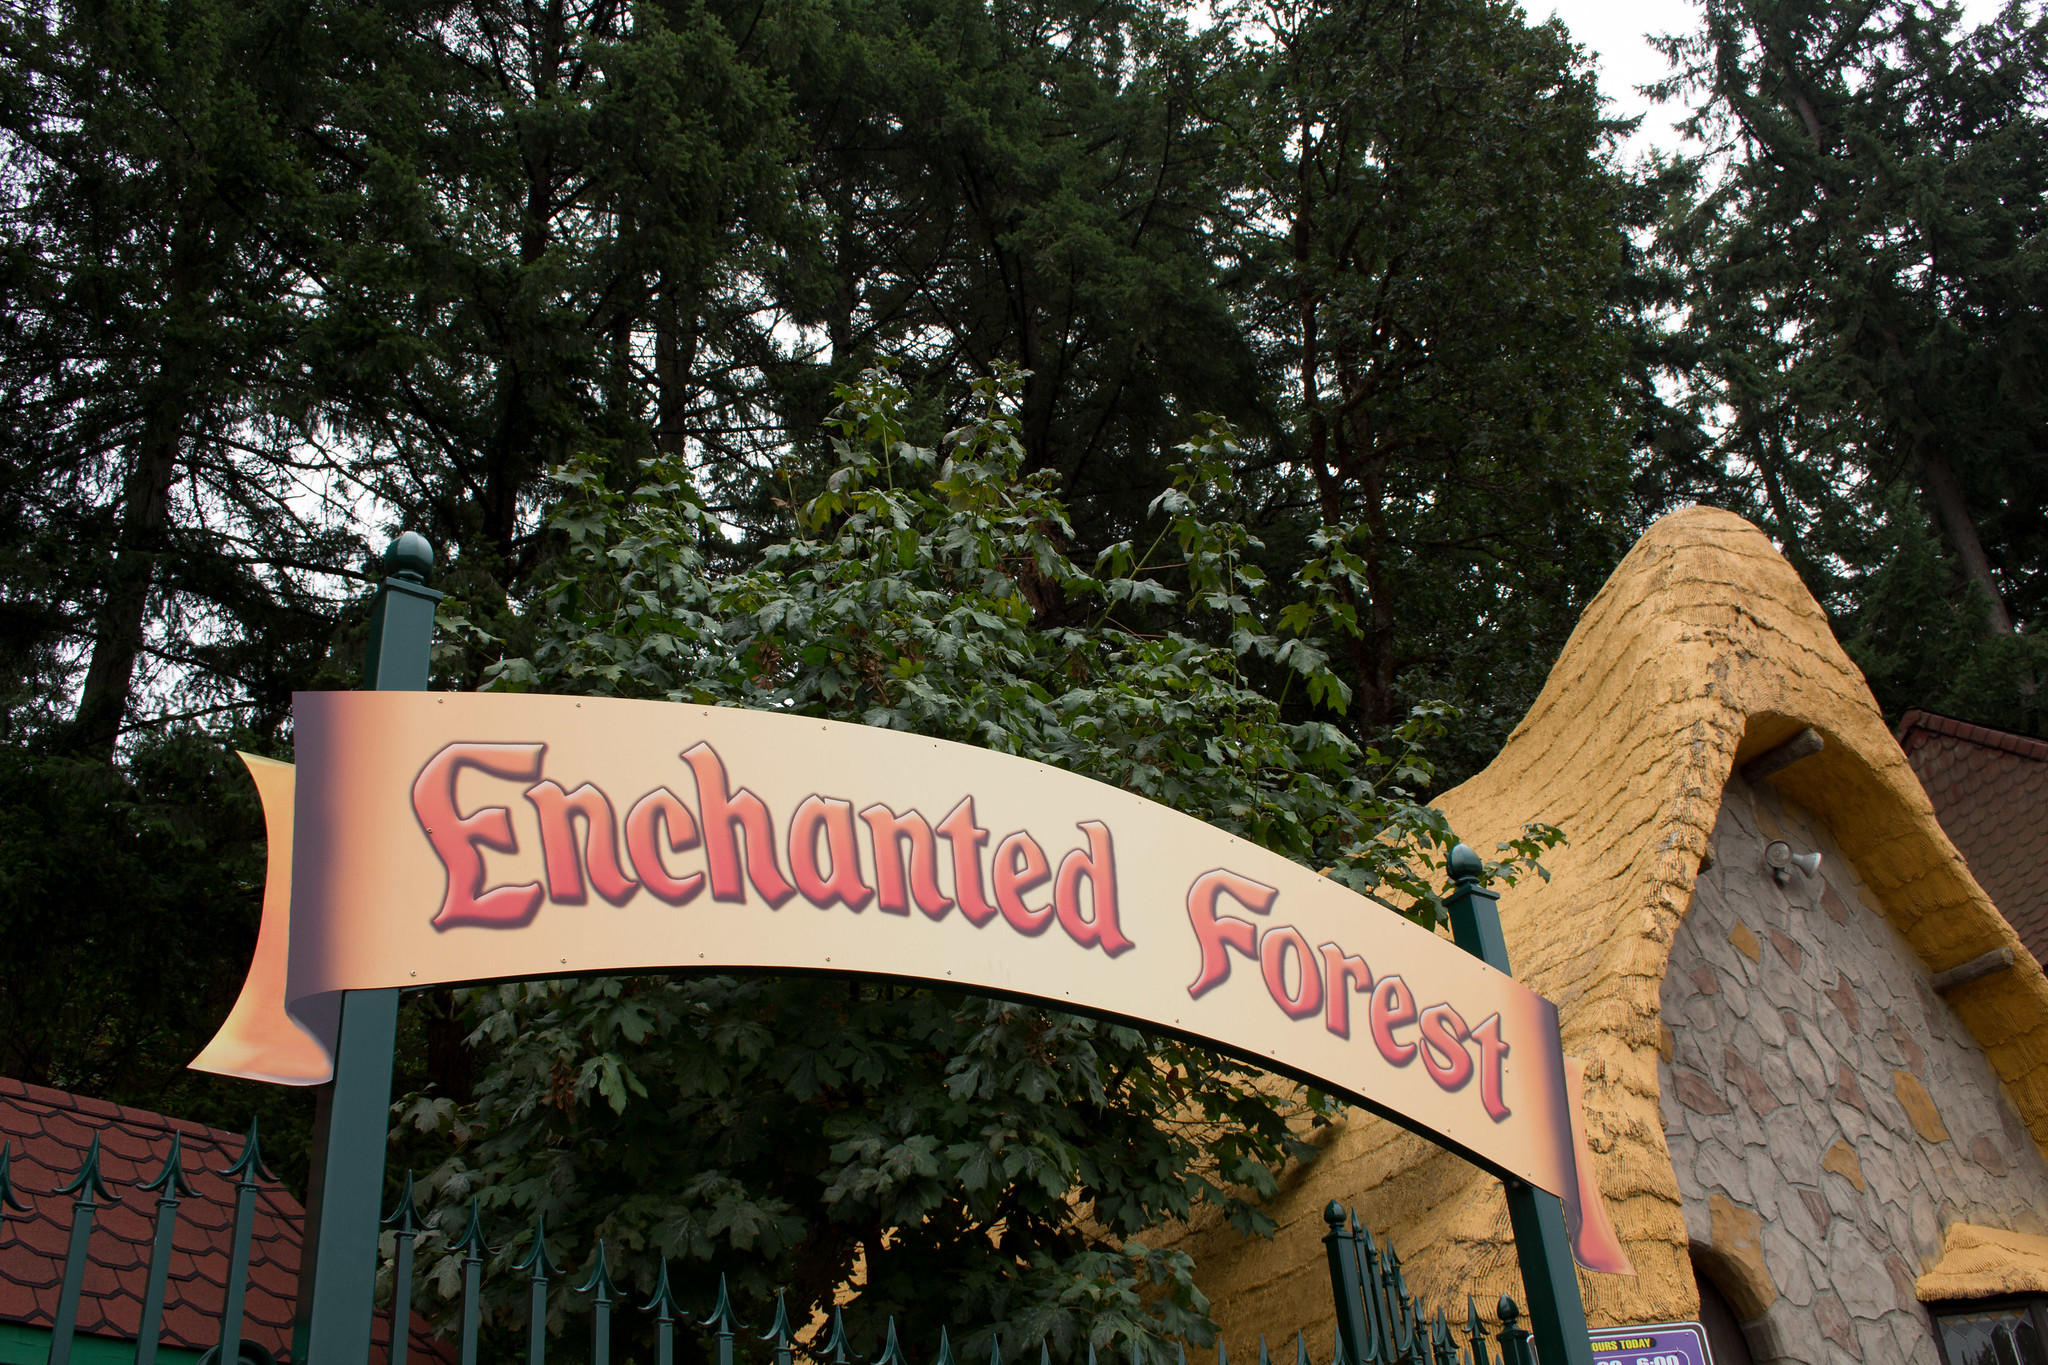 The Enchanted Forest park sign.